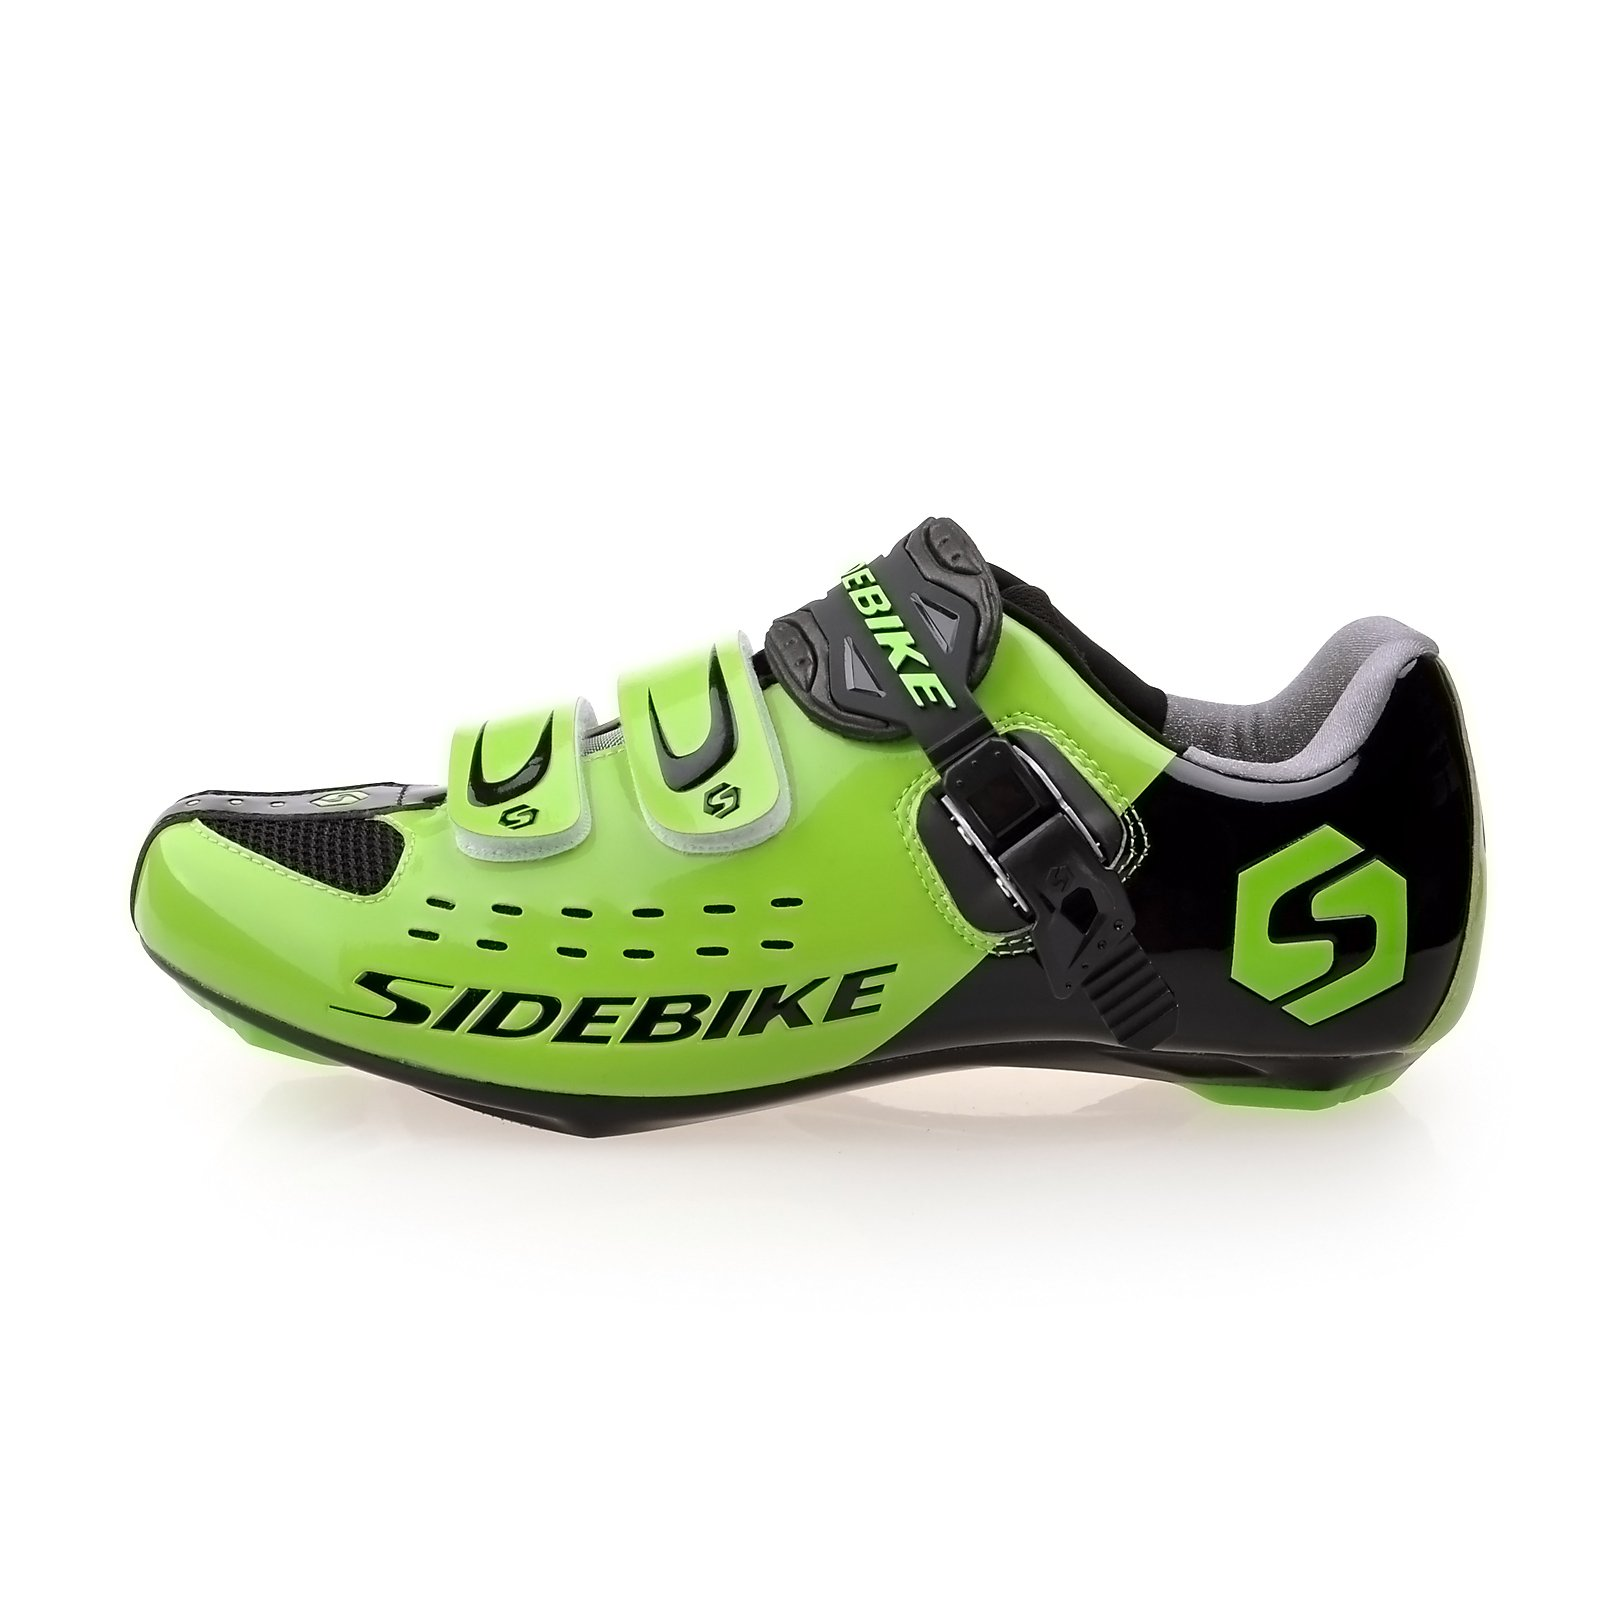 Smartodoors MTB Road Cycling Shoes with Carbon Soles SD002 (US12/EU45/Ft28.5cm)